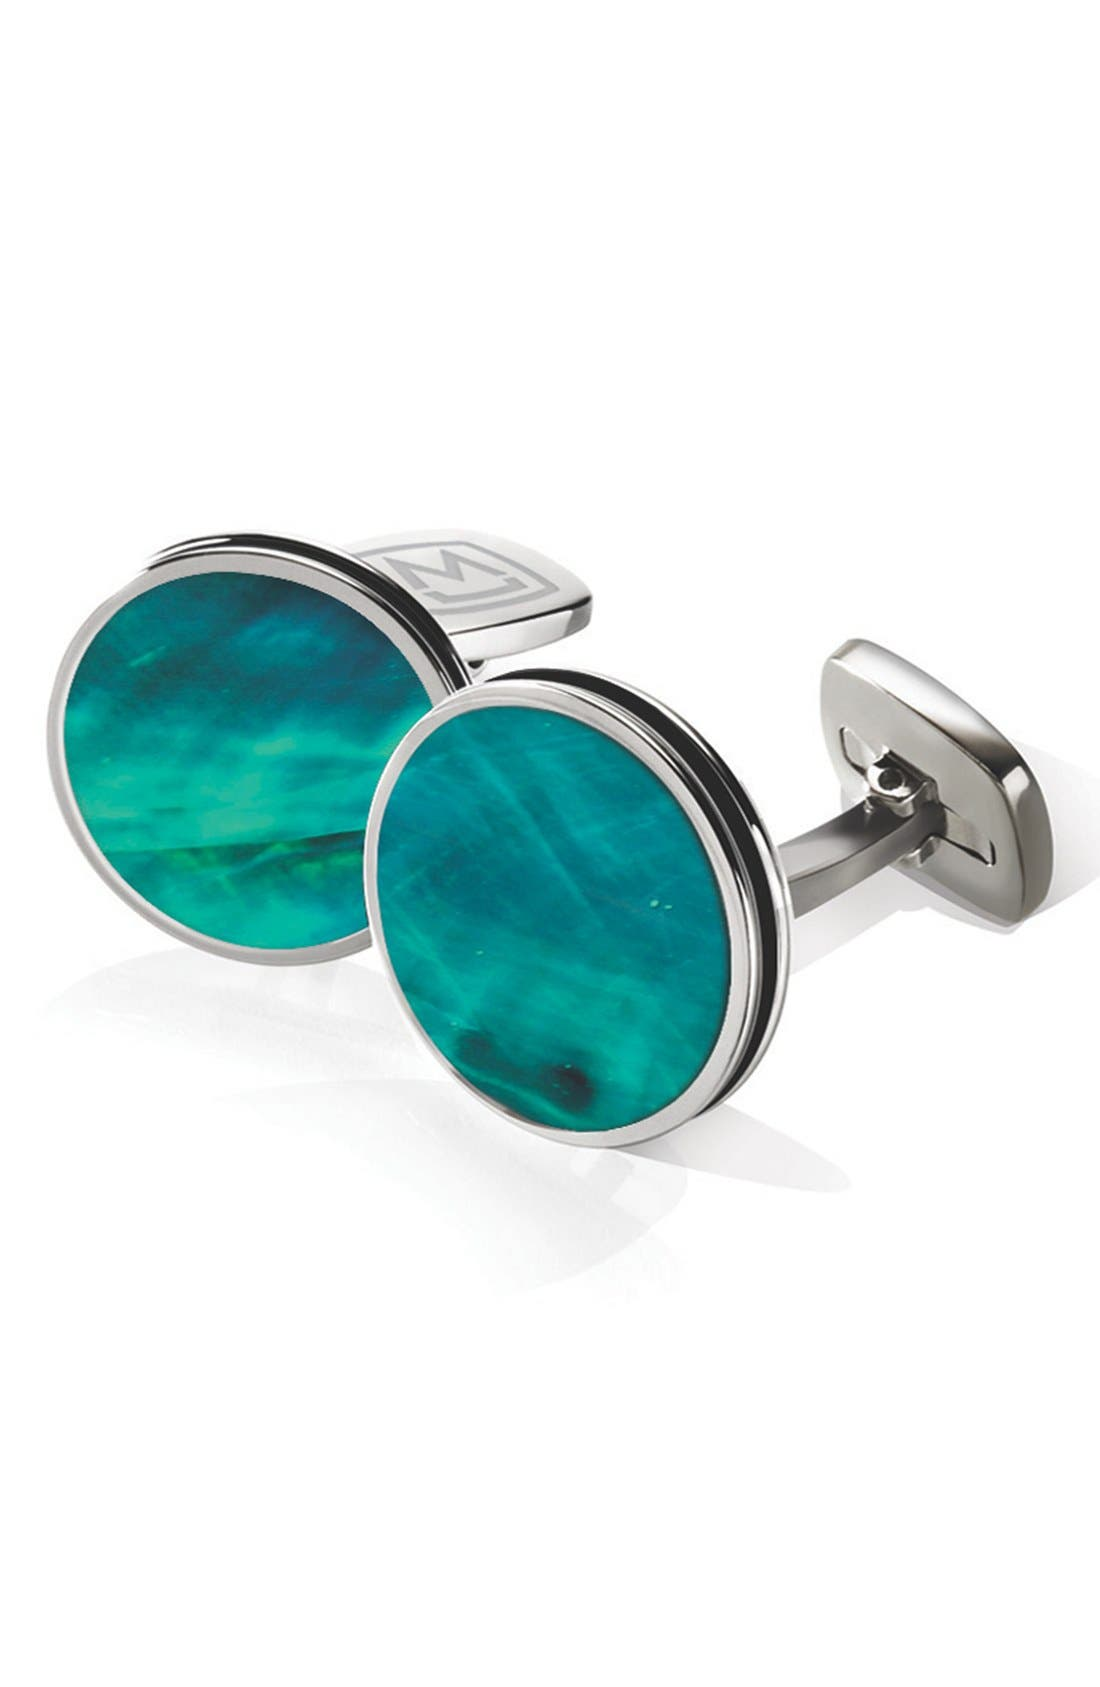 Stainless Steel Cuff Links,                             Main thumbnail 1, color,                             Stainless Steel/ Teal